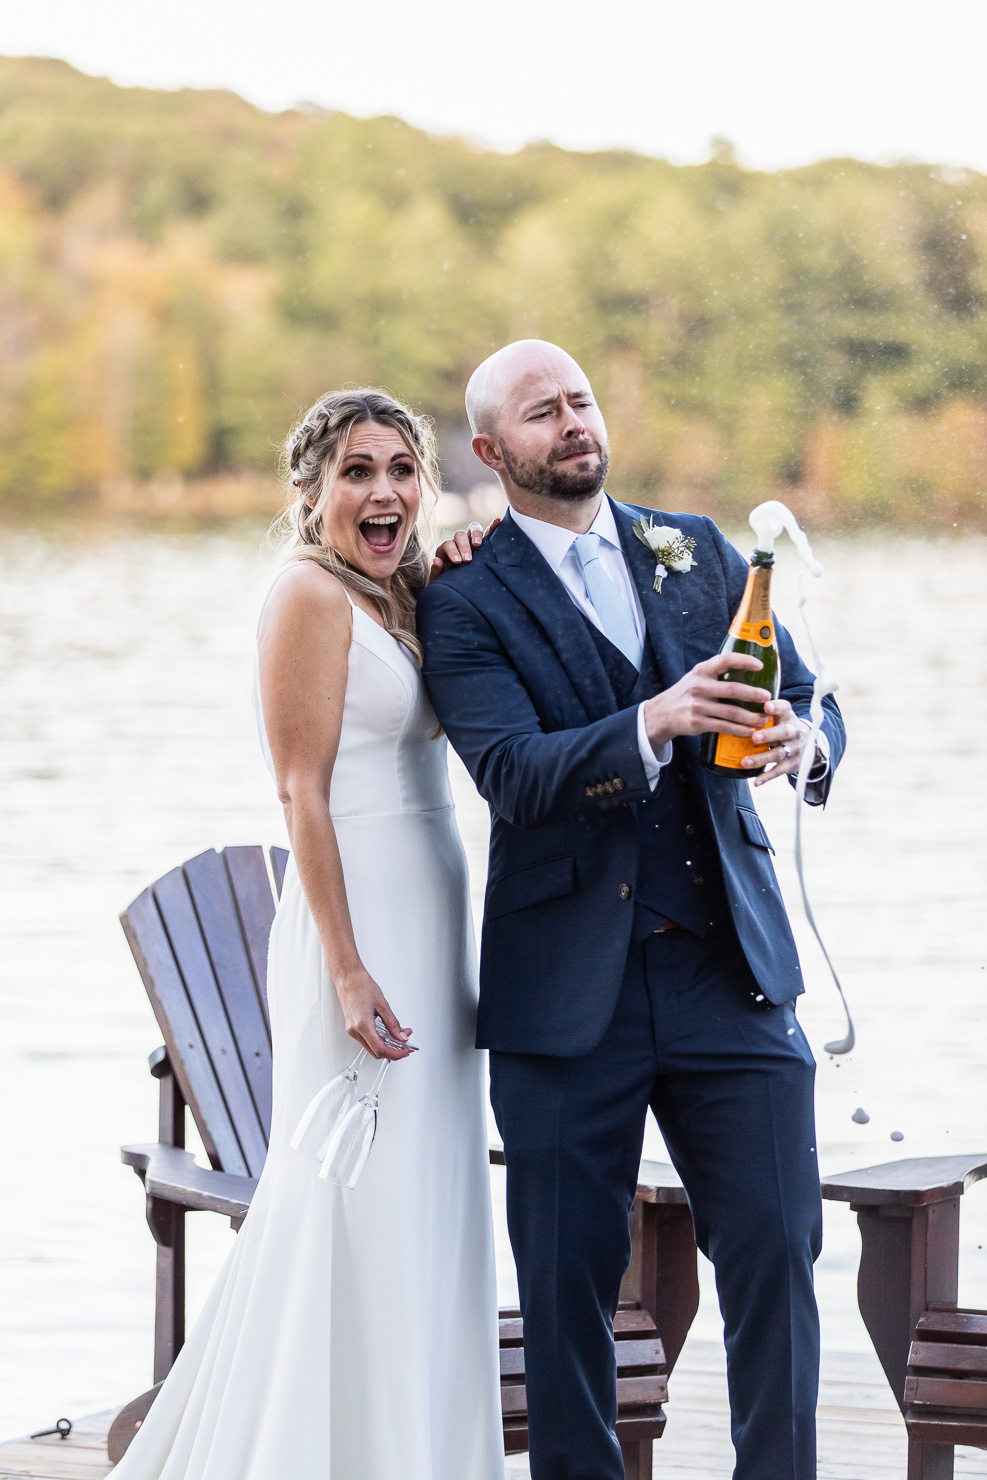 Bride and Groom, Wedding, Wedding Photo, akaiserphoto, Sherwood Inn, wedding photographer, sudbury photographer, muskoka wedding, detailsony, Wedding, Wedding Photo, akaiserphoto, Sherwood Inn, wedding photographer, sudbury photographer, muskoka wedding